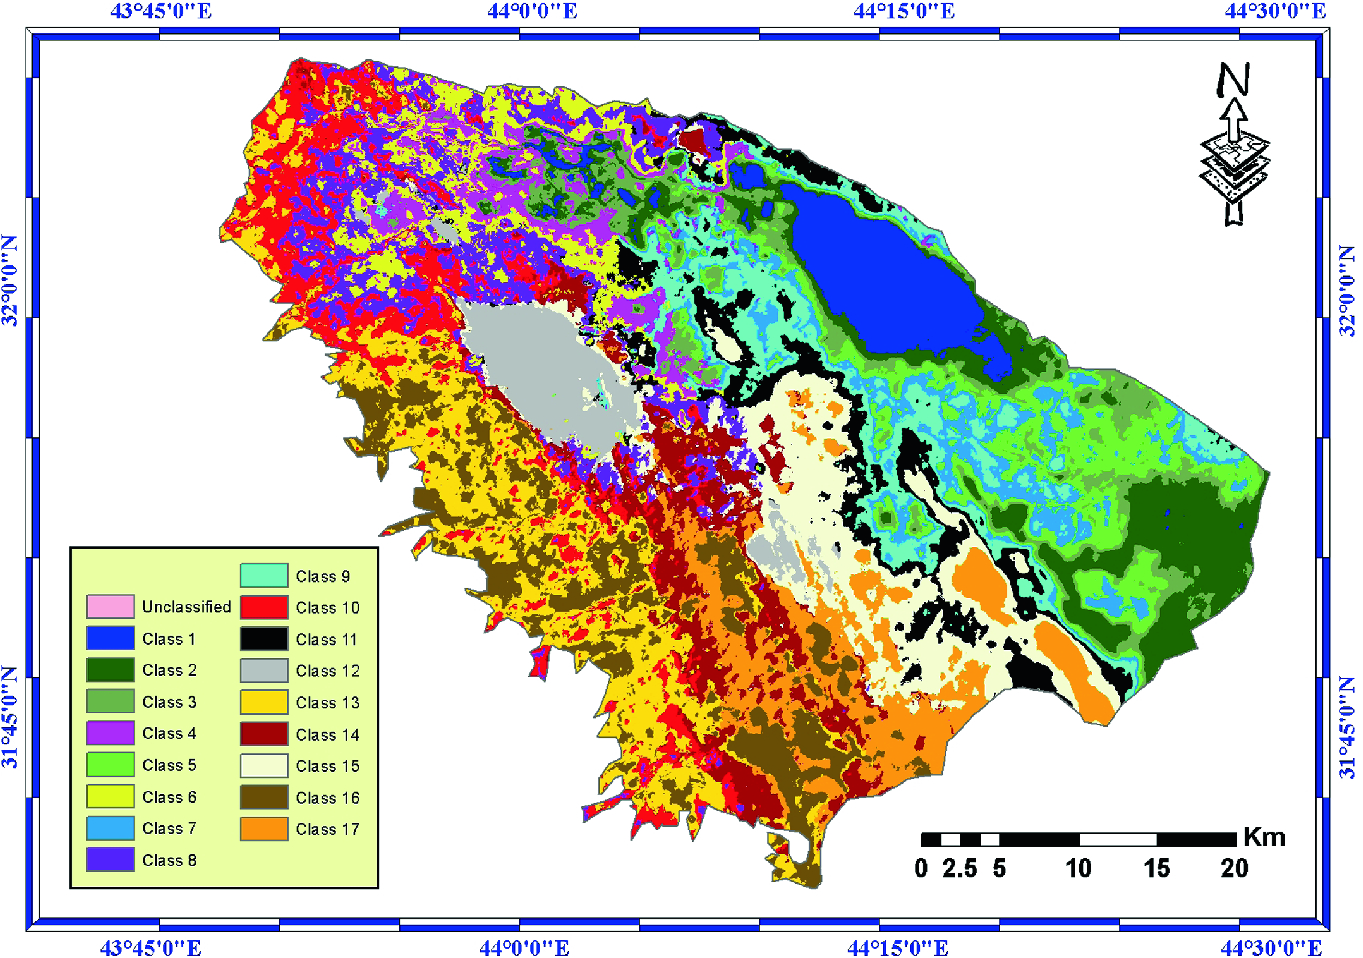 Characterization and Classification of Soil Map Units by